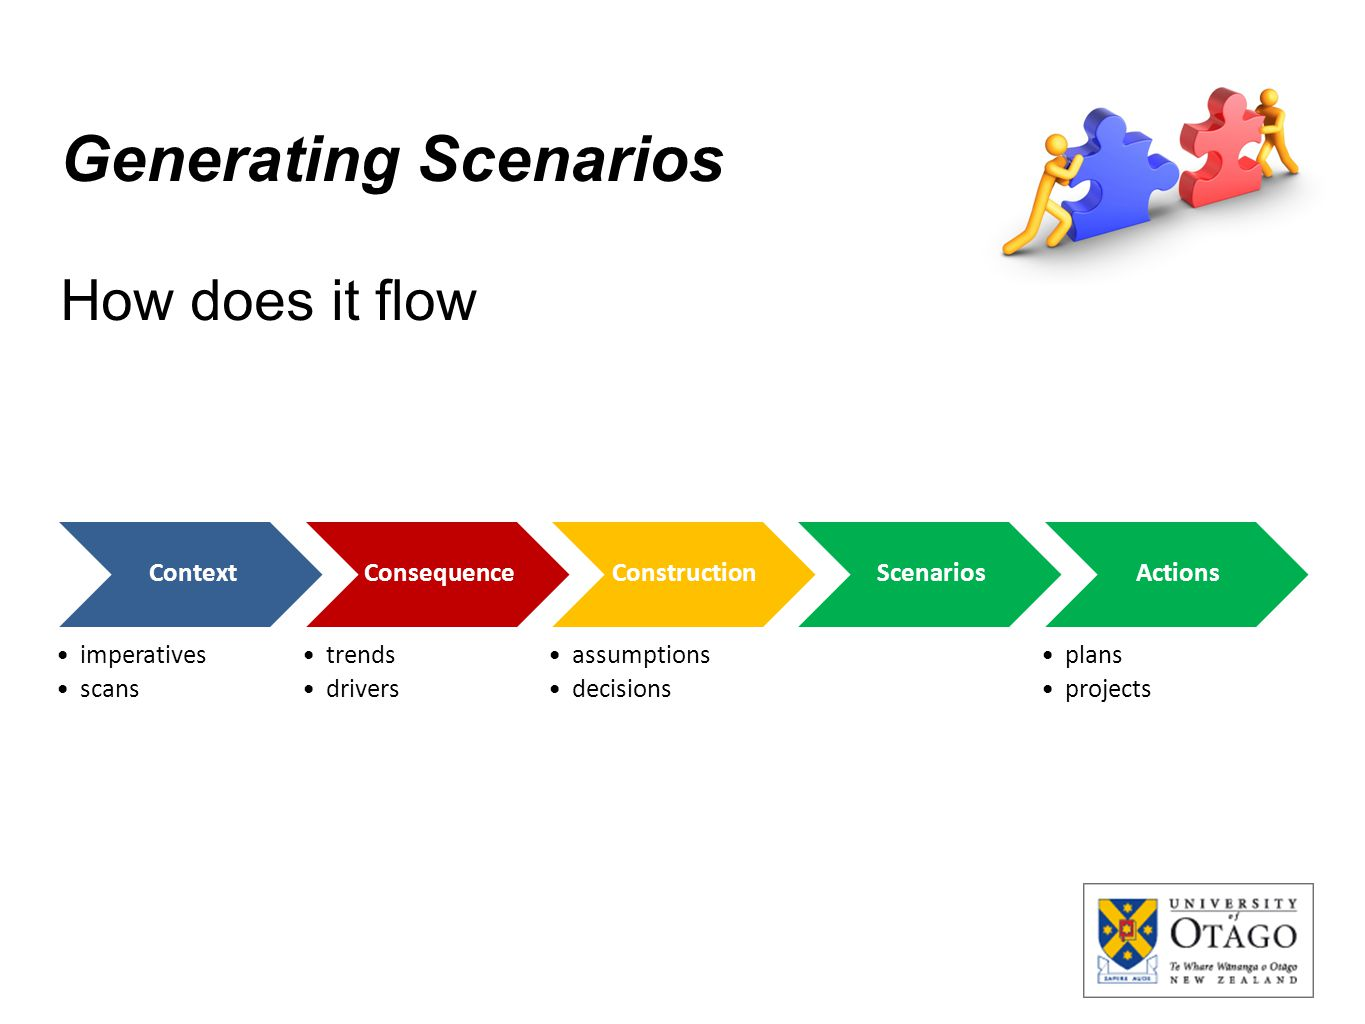 Generating Scenarios How does it flow Context imperatives scans Consequence trends drivers Construction assumptions decisions ScenariosActions plans p